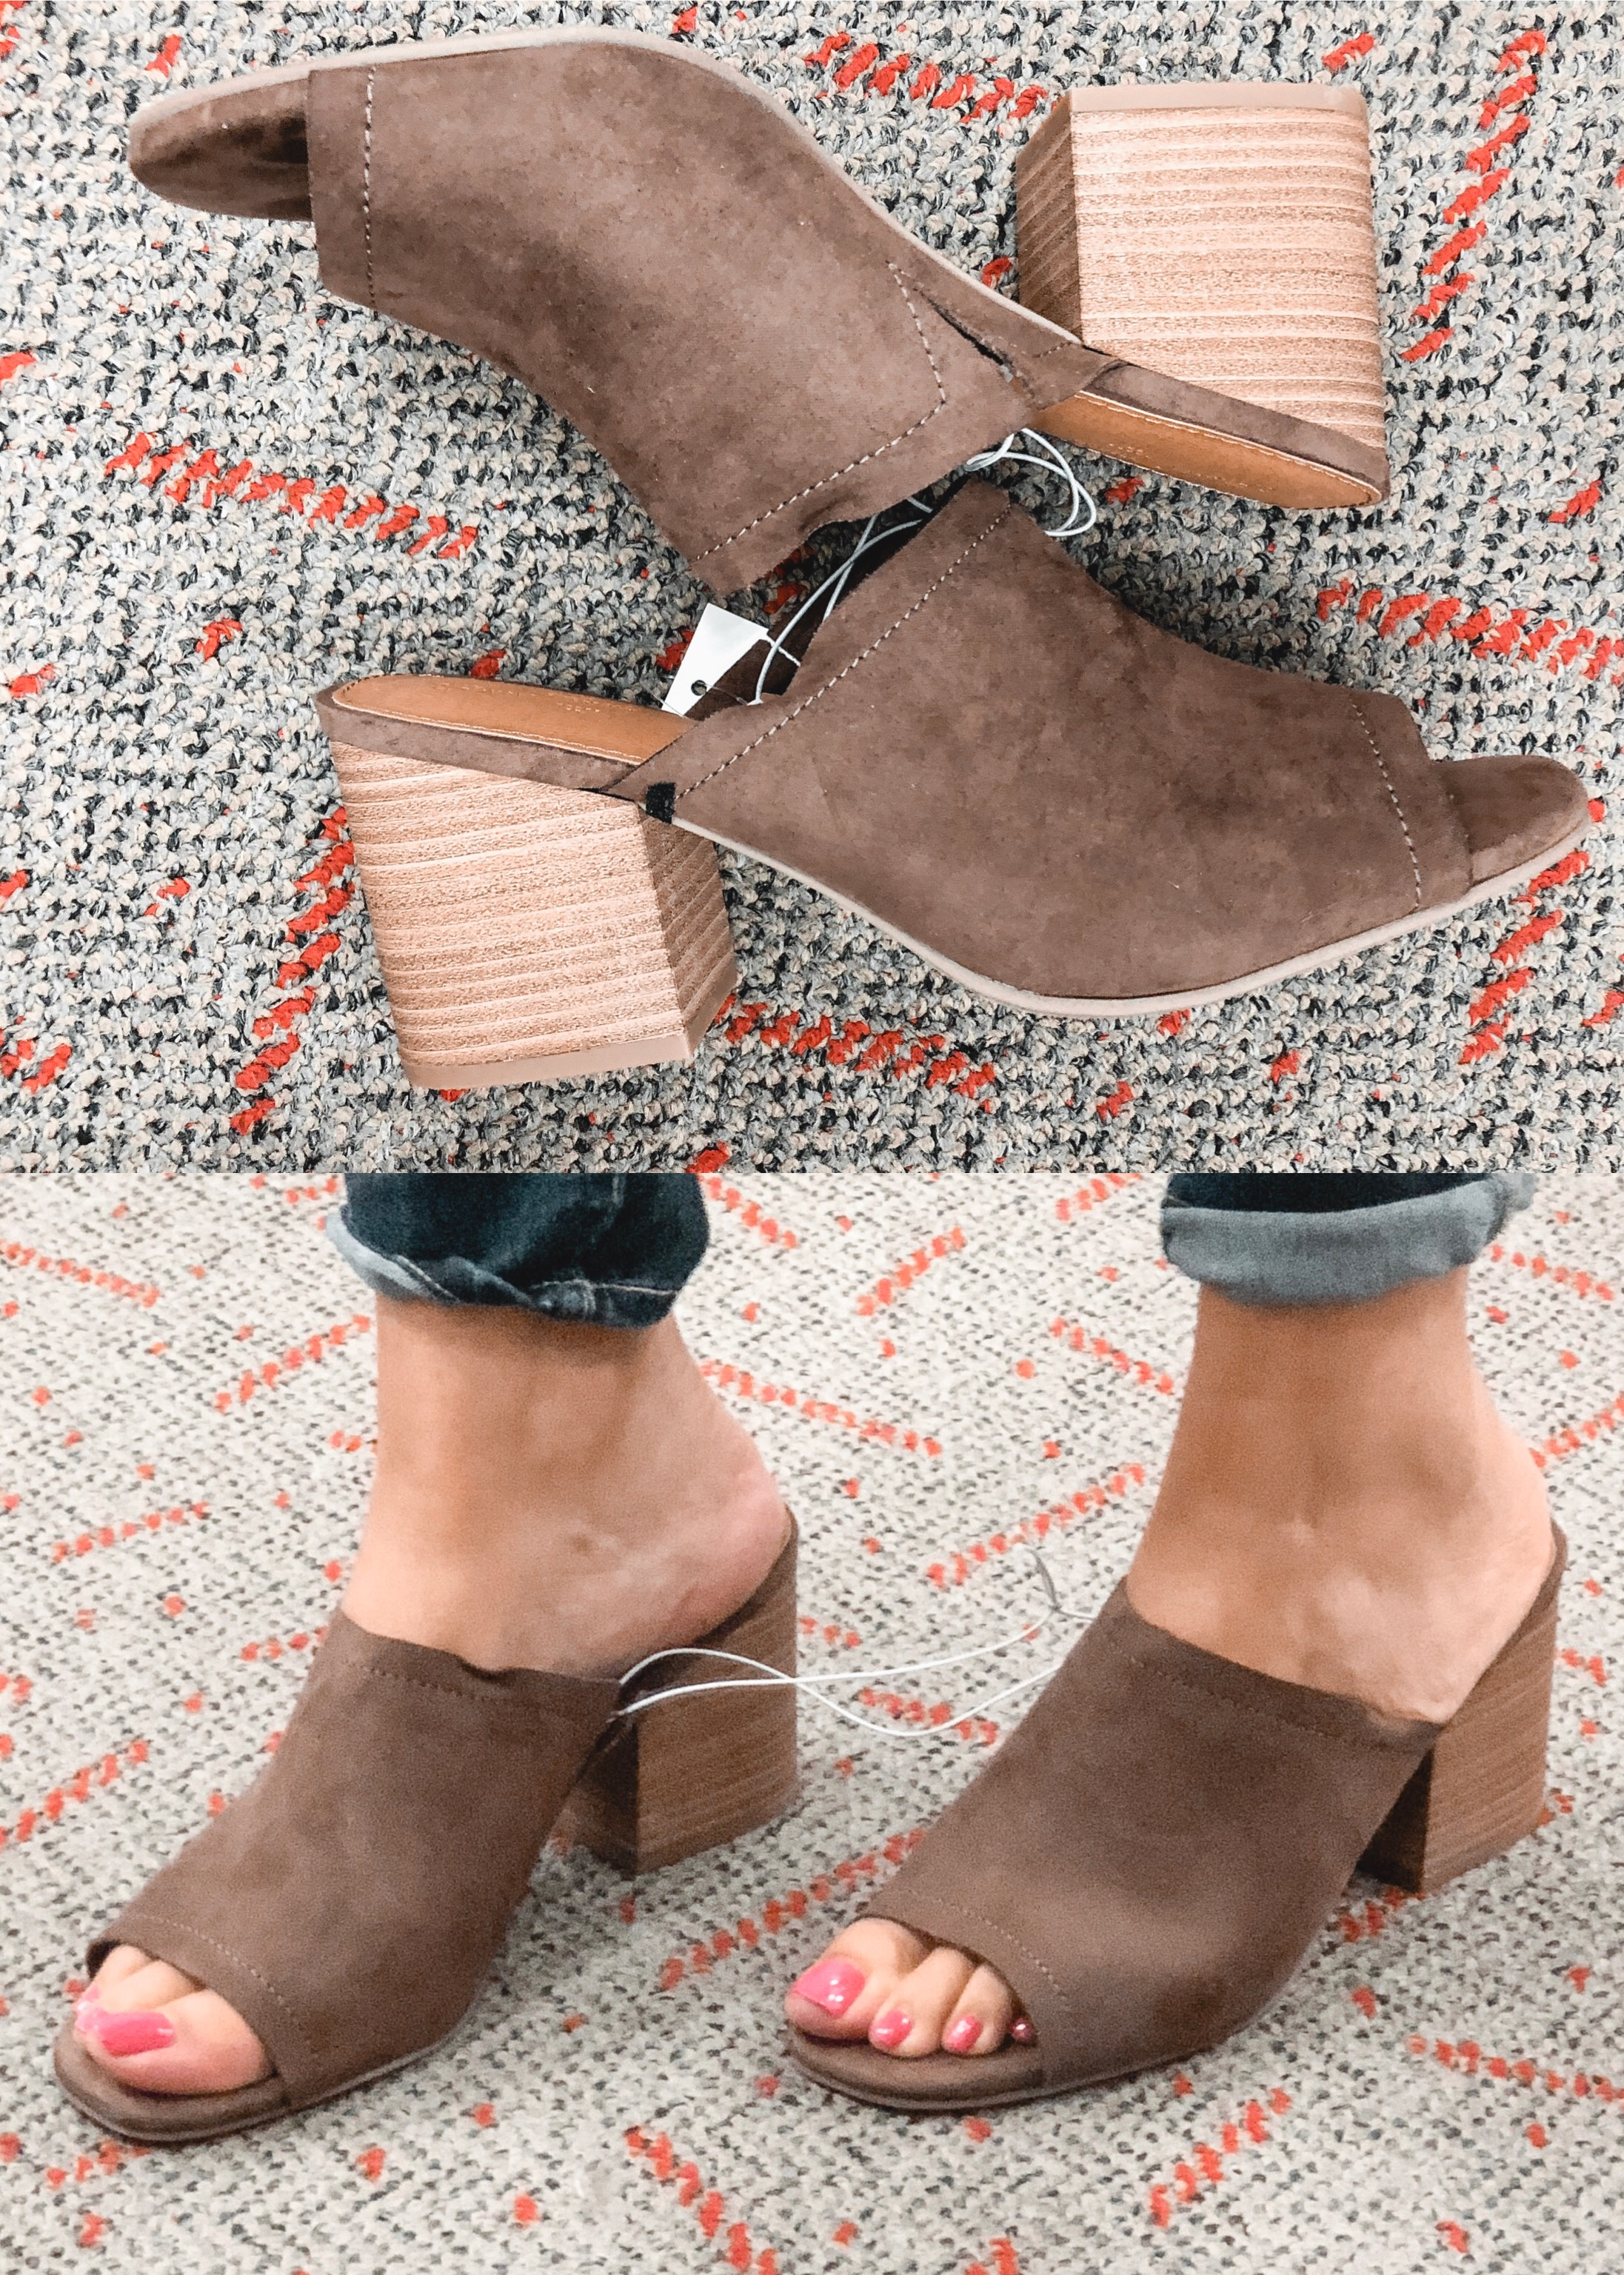 target heeled mules - universal thread norelle | 9 pairs of target fall shoes reviewed! bylaurenm.com